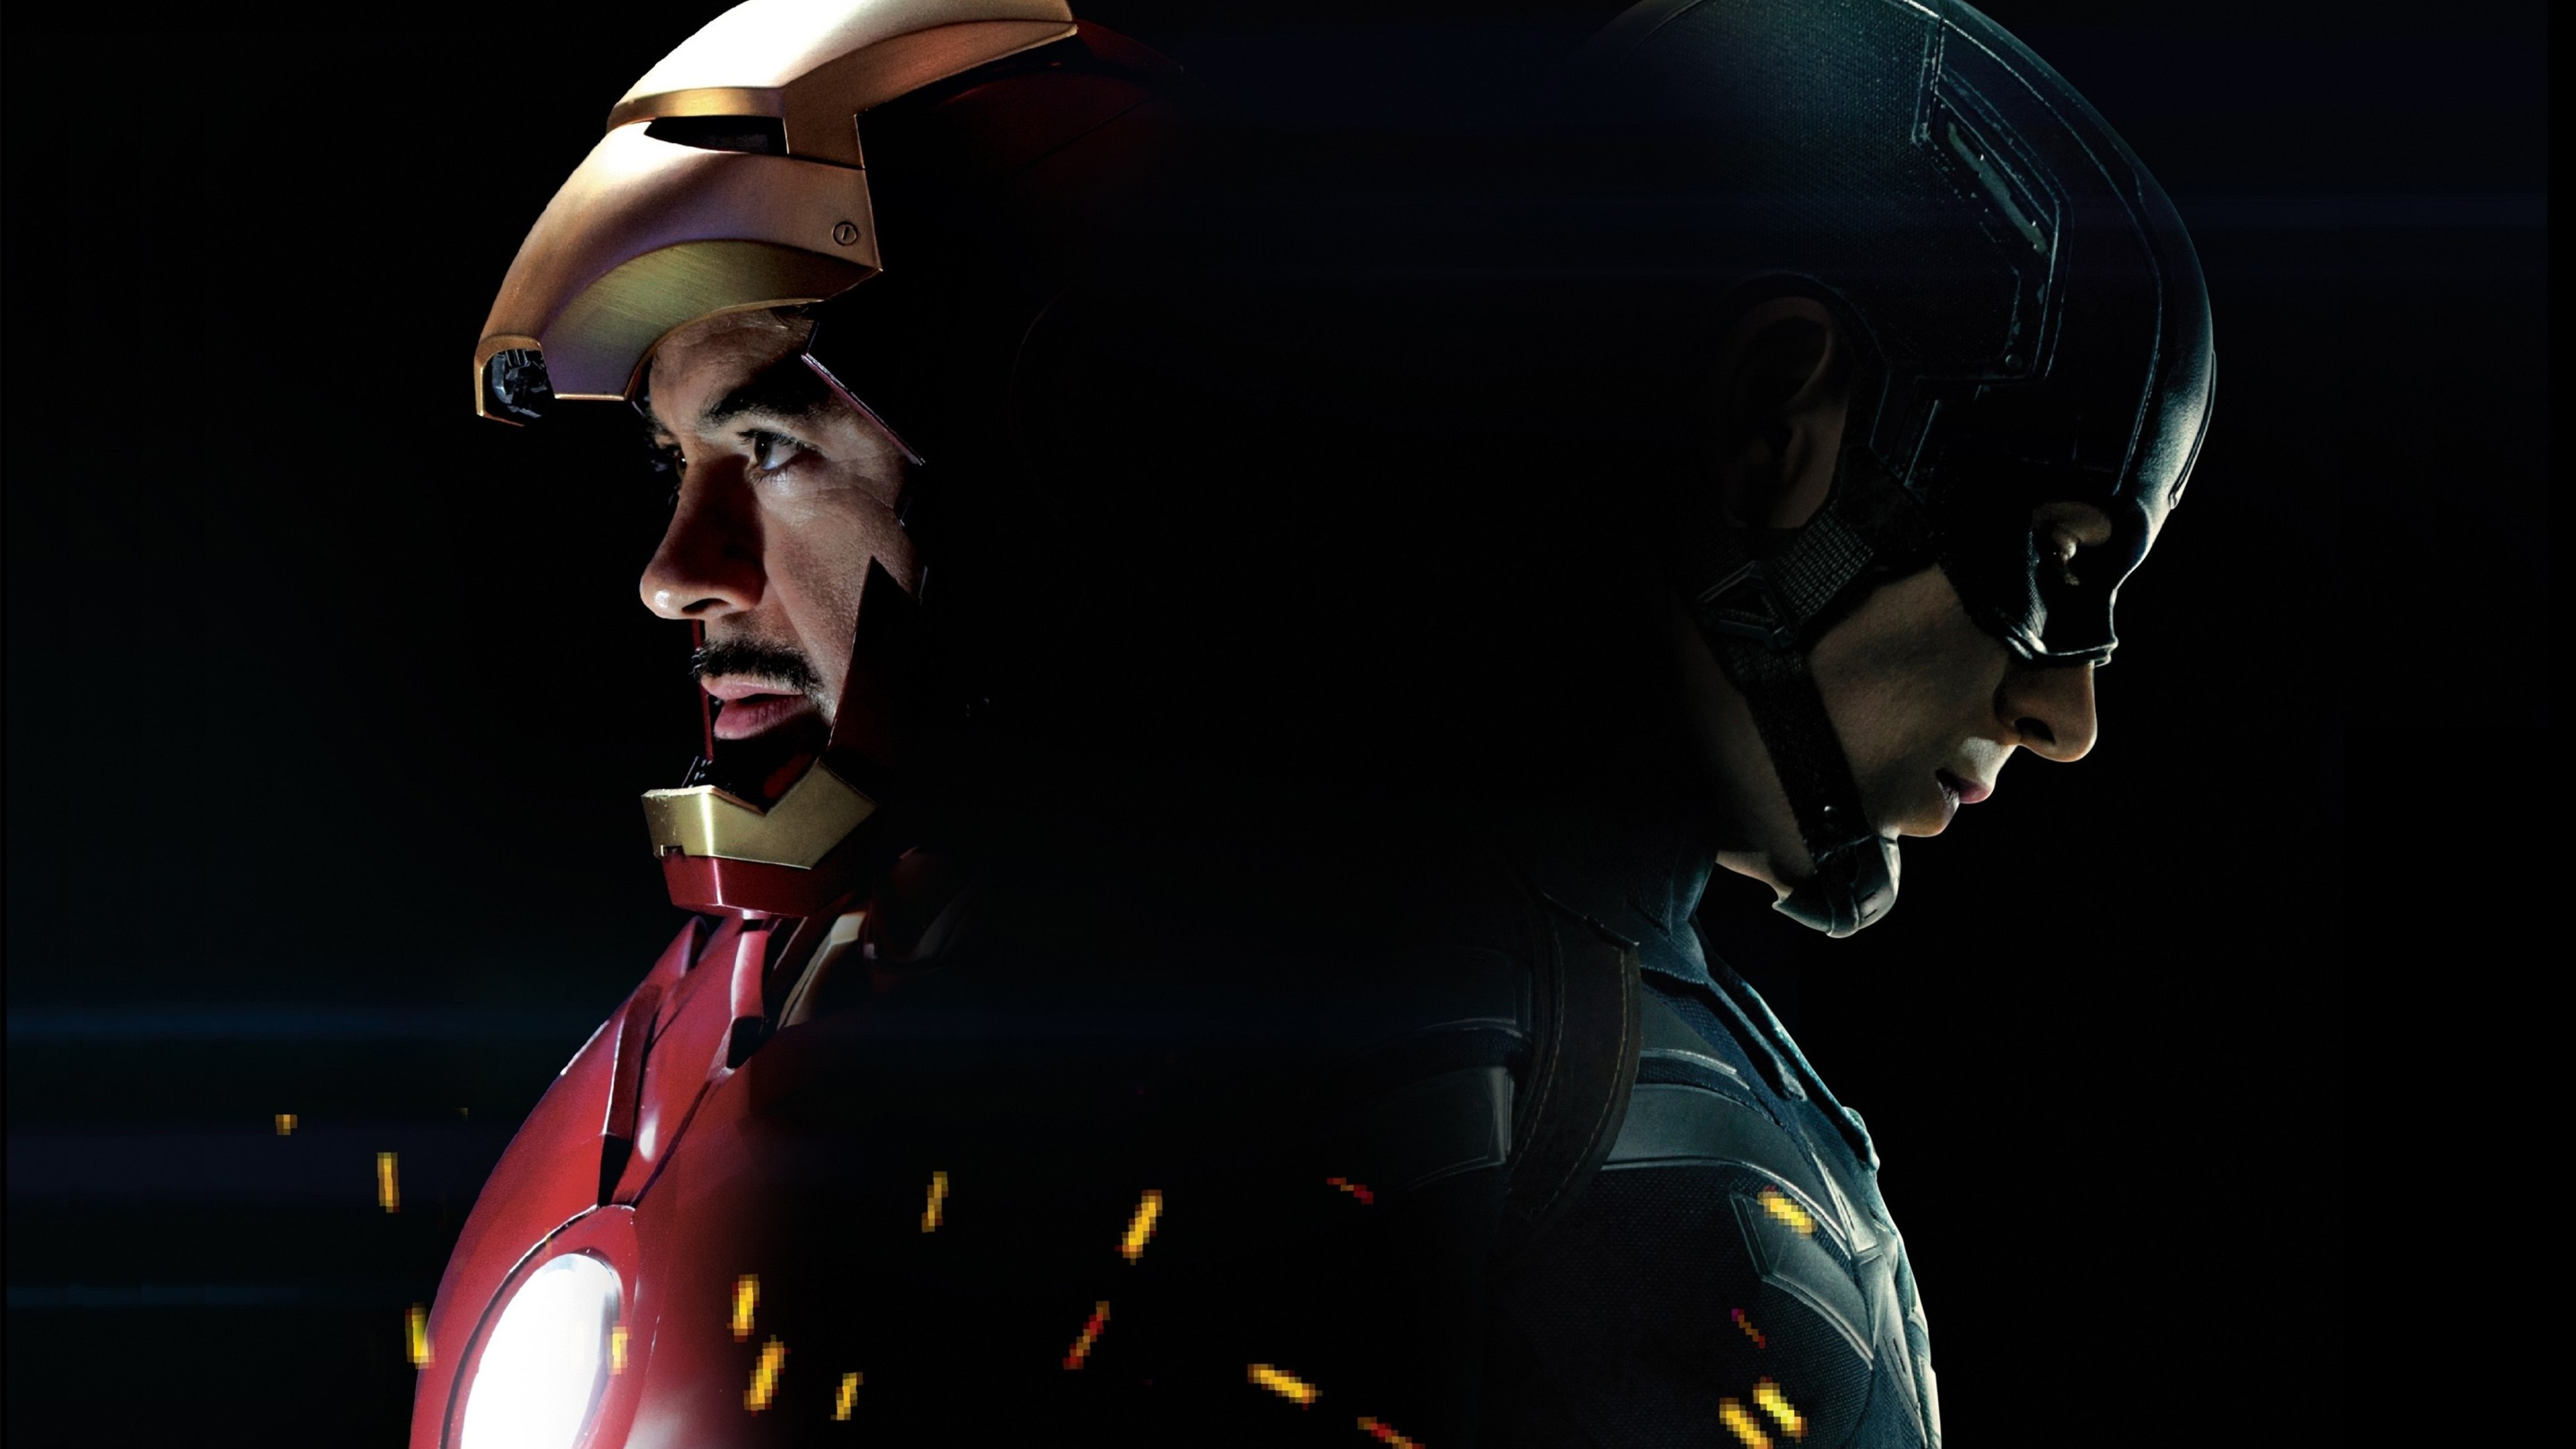 captain america vs iron man wallpaper  Captain America 3 Civil War Iron Man, HD Movies, 4k Wallpapers ...